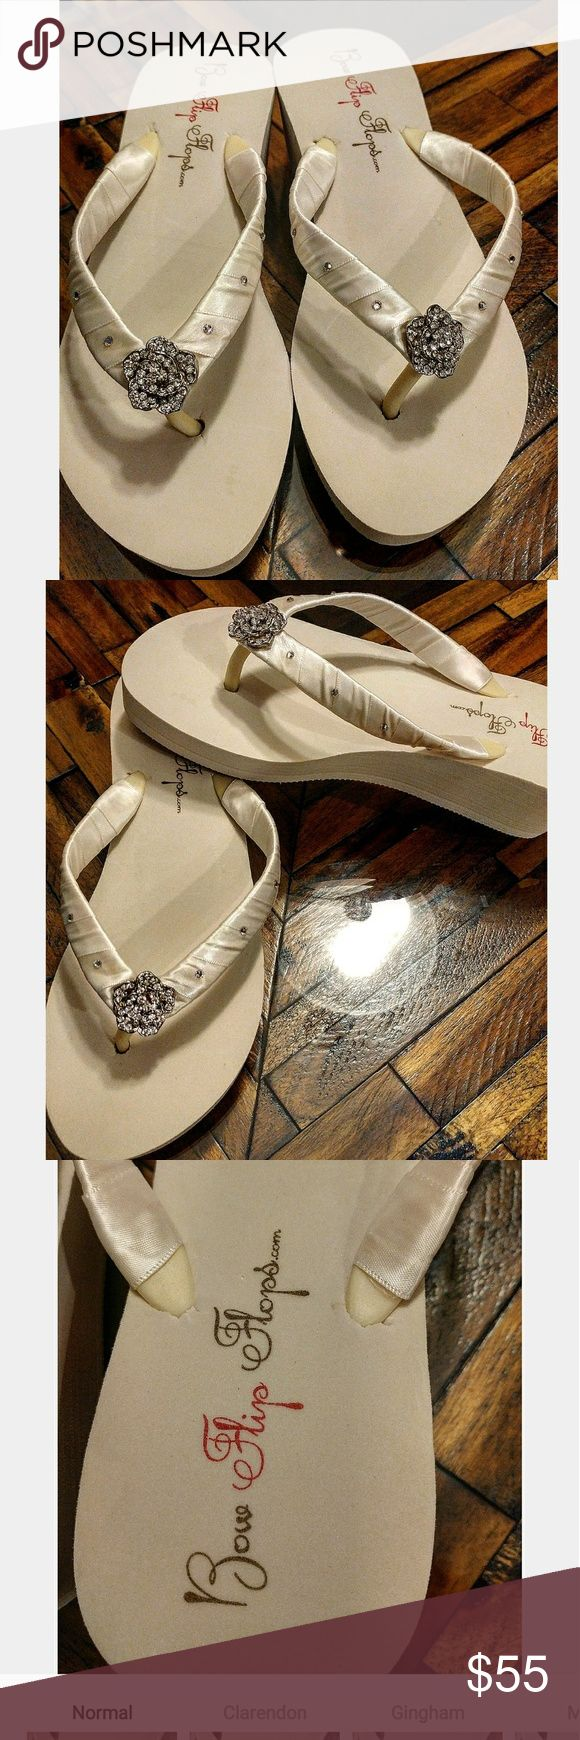 !Ivory wedding sandals Size 7 wedding sandals, NEW.  never worn.  Ivory in color, beautiful sparkling flower embellishments and sparkling studs.  Perfect for beach wedding or just to throw on at the reception!  So cute!!  bow flip flops Shoes Sandals